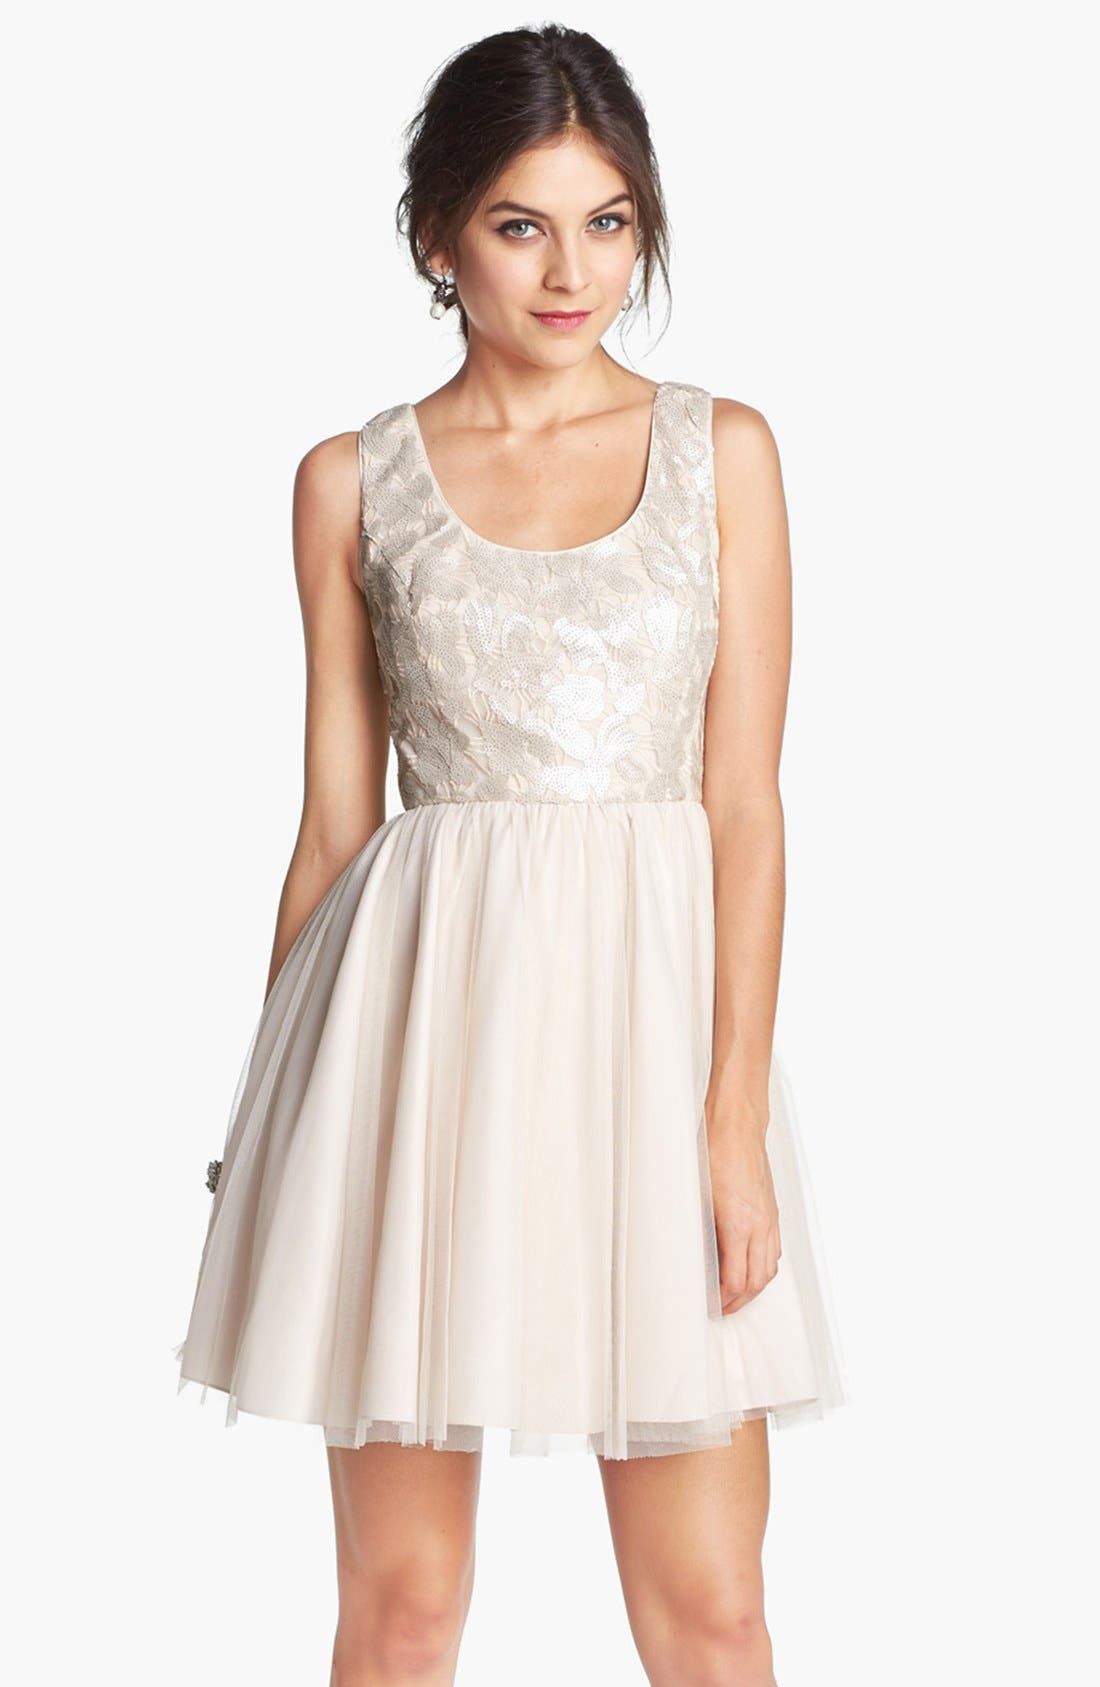 Main Image - Aidan by Aidan Mattox Embellished Tulle Fit & Flare Dress